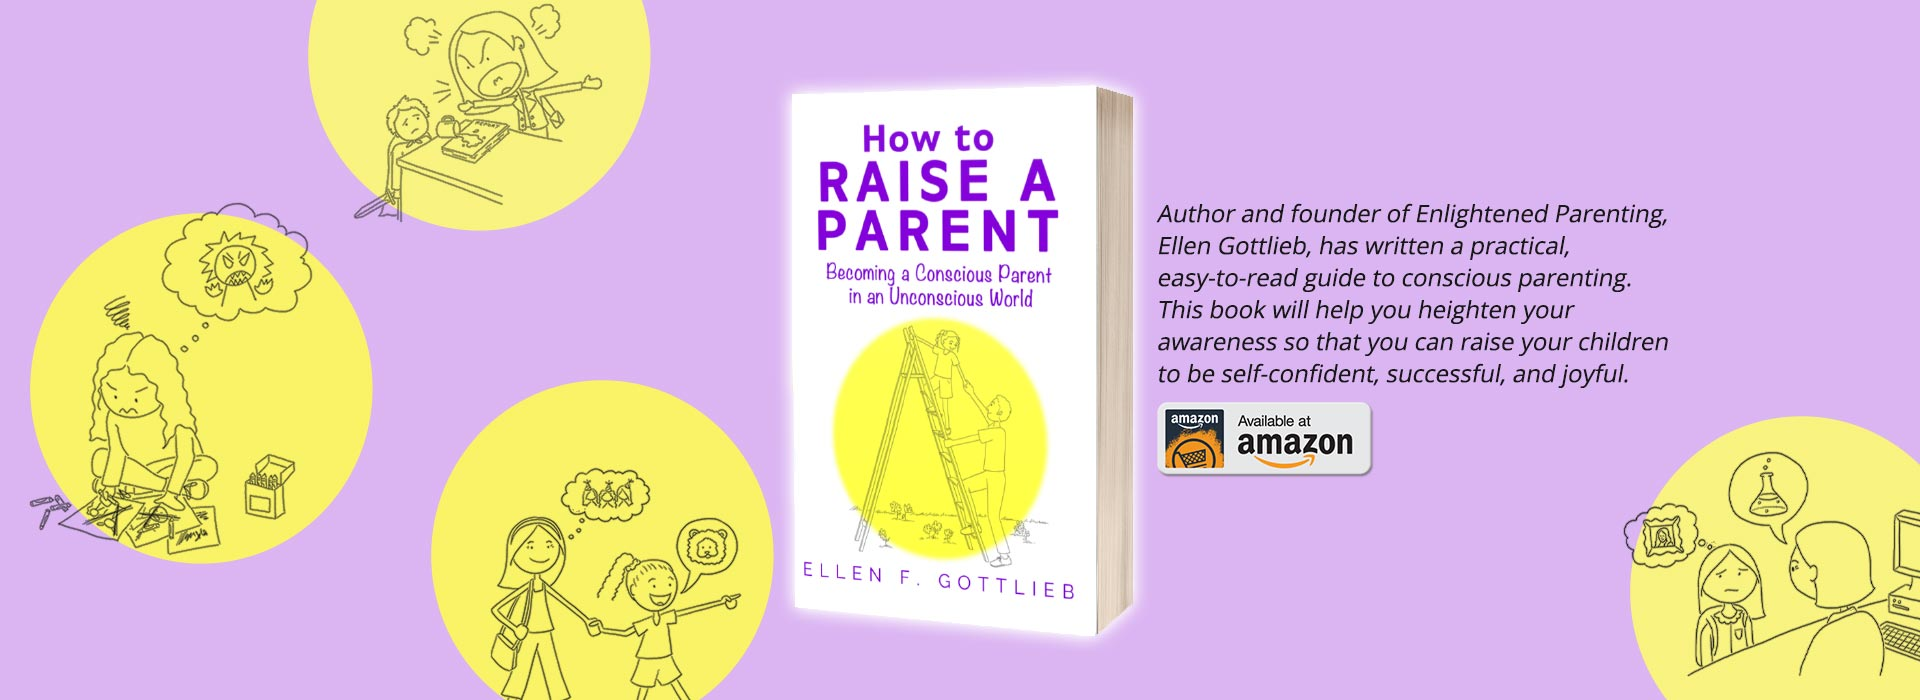 How to Raise a Parent - Becoming a Conscious Parent in an Unconscious World